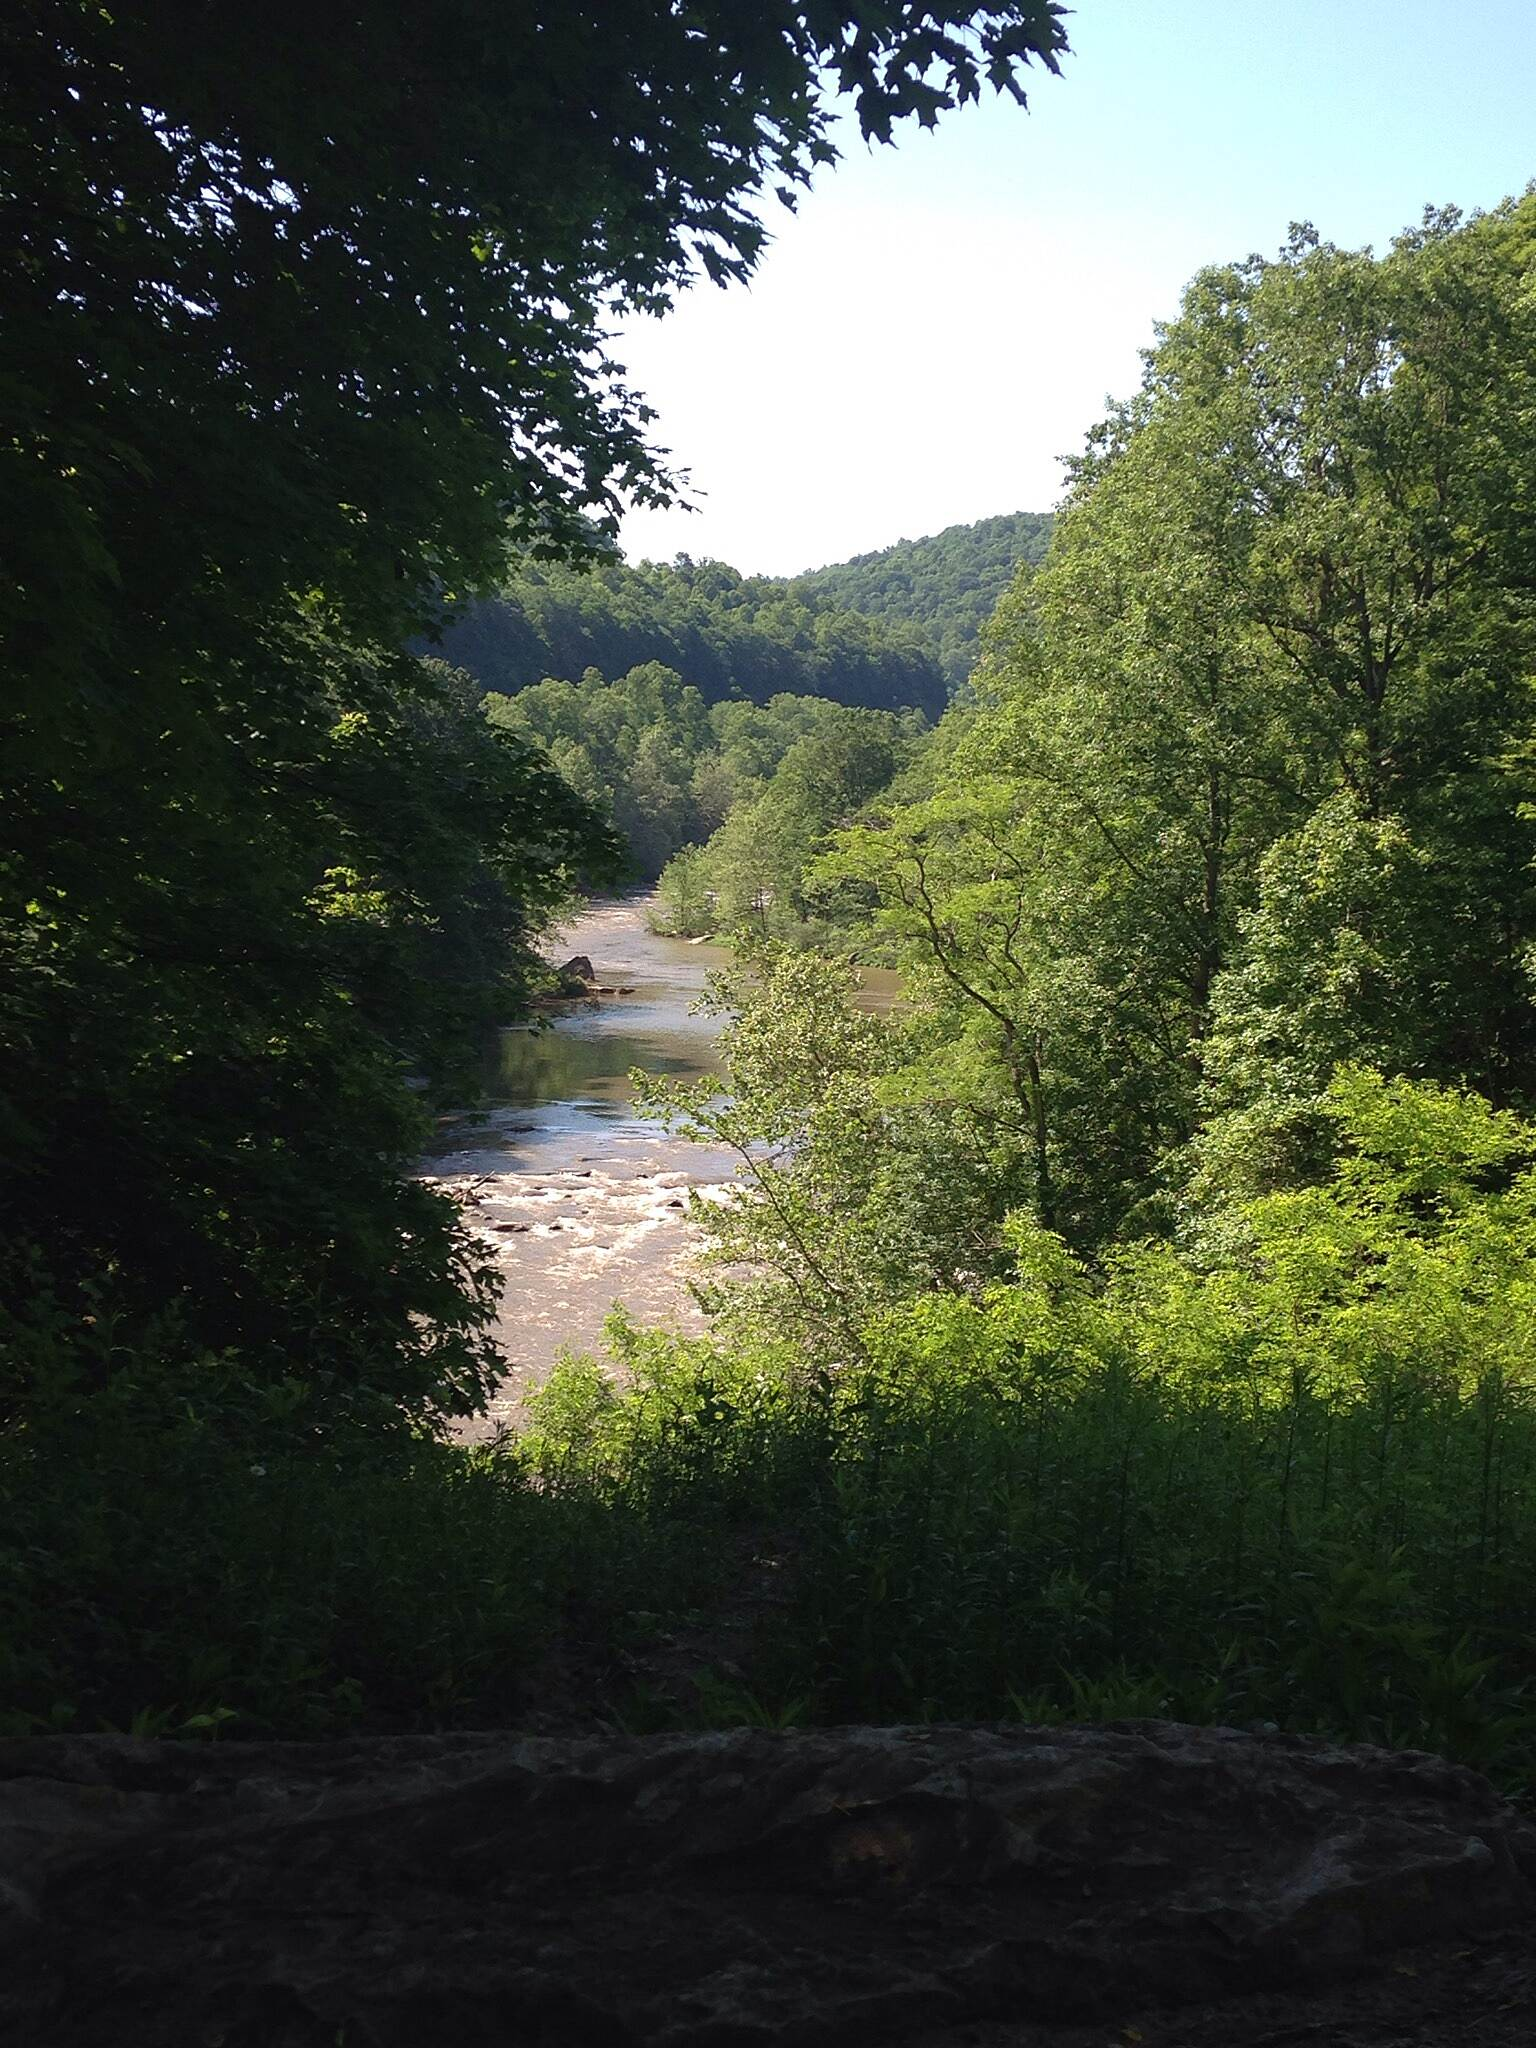 Great Allegheny Passage Fabulous view along the GAP The scenery along river trail is breathtaking. Much of the trail is lined by a canopy of trees with views of the river making this one of my favorite trails!